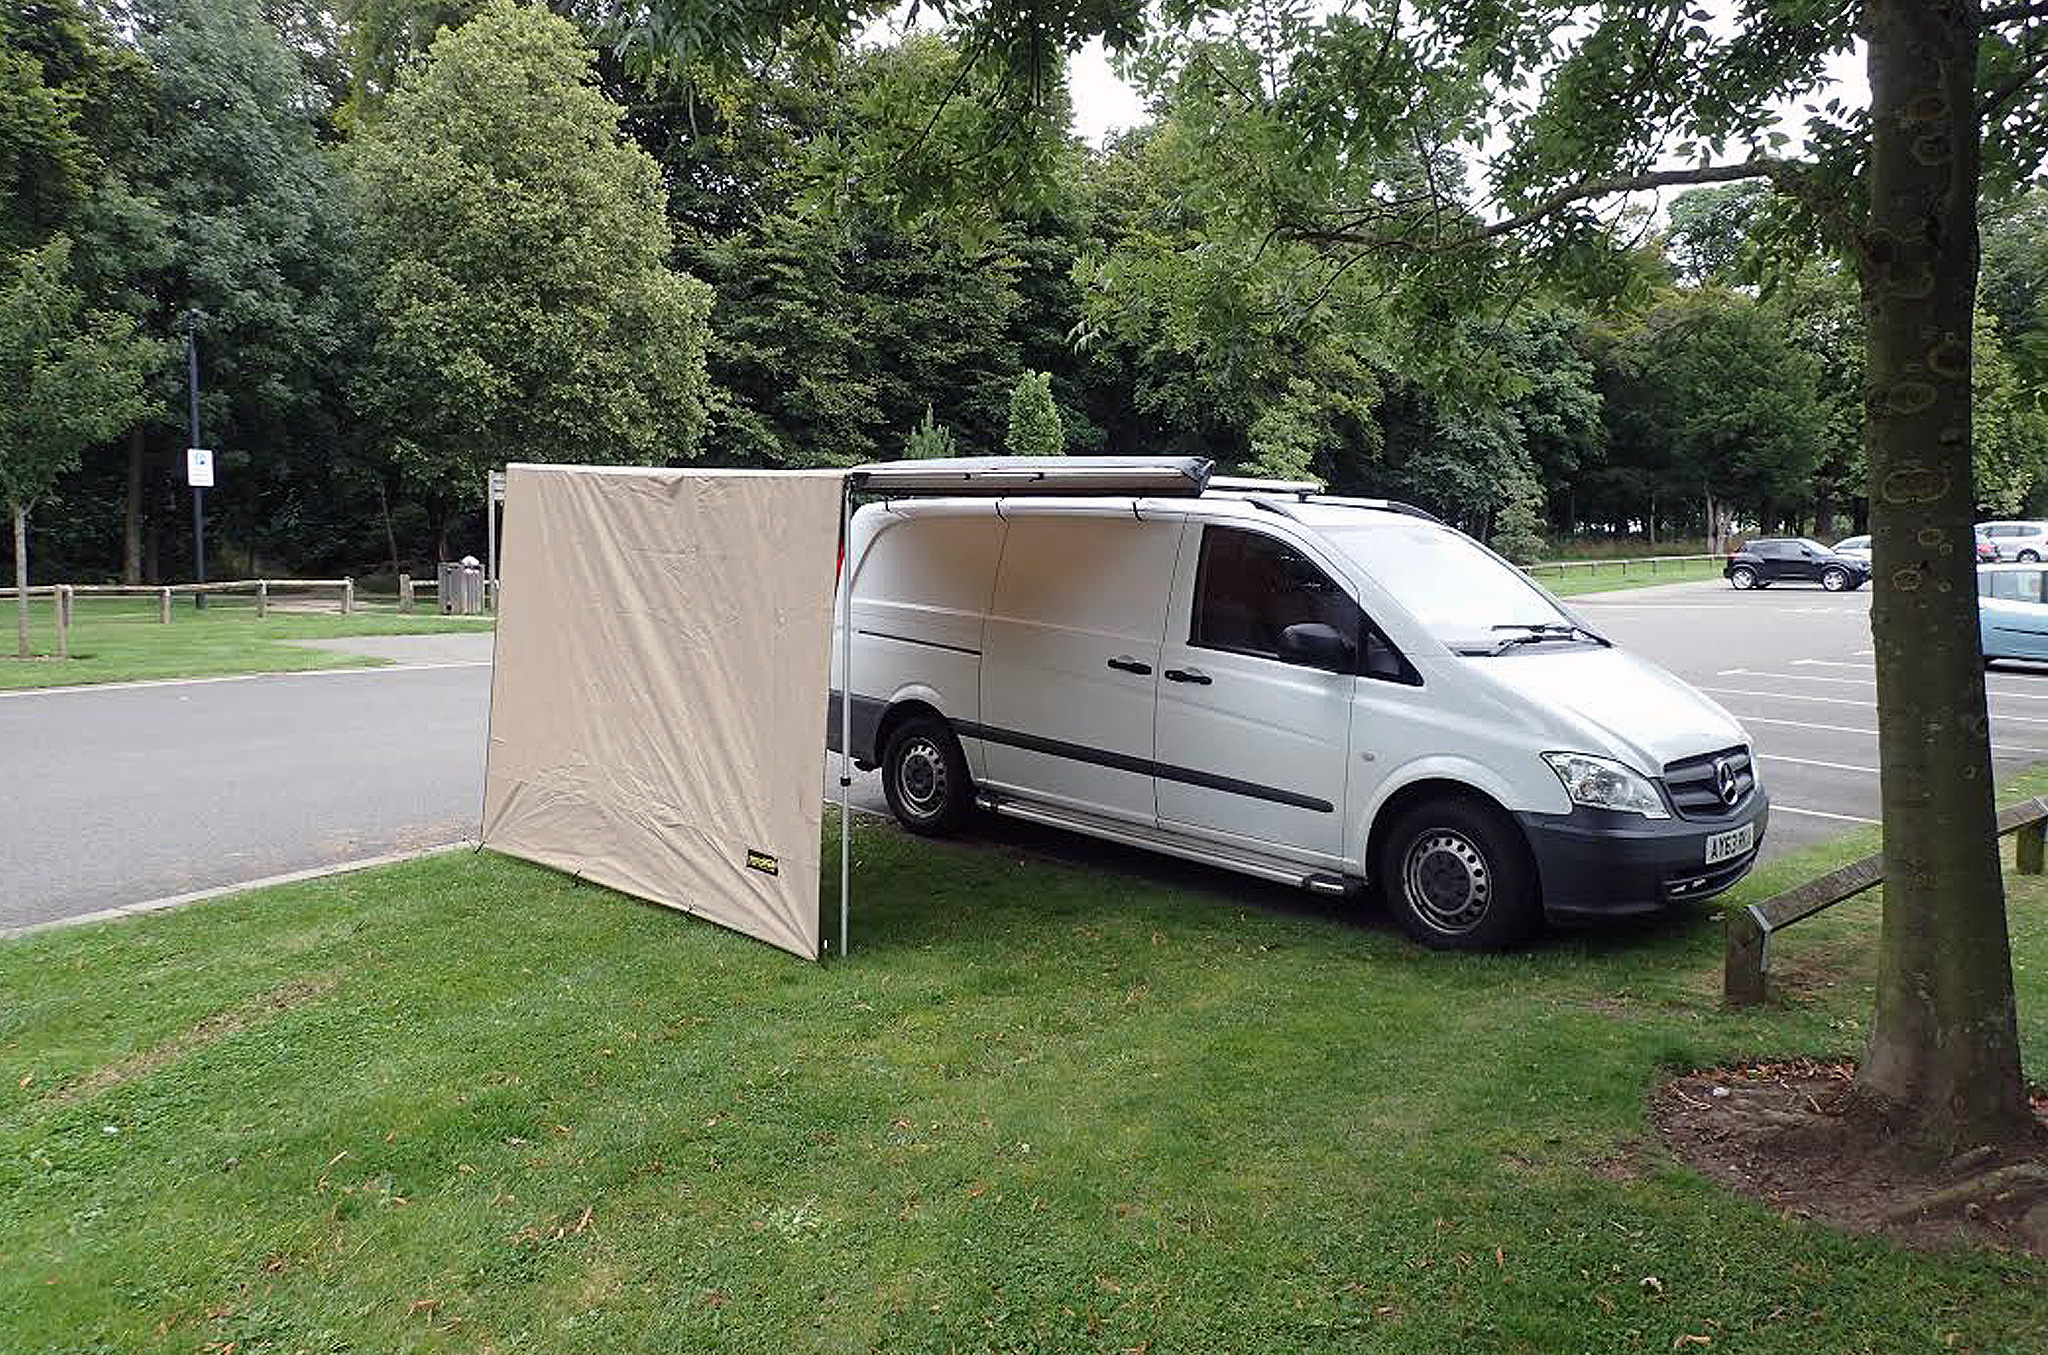 2.0M X 1.8M Front Awning Extension For Pull Out Exterior ...